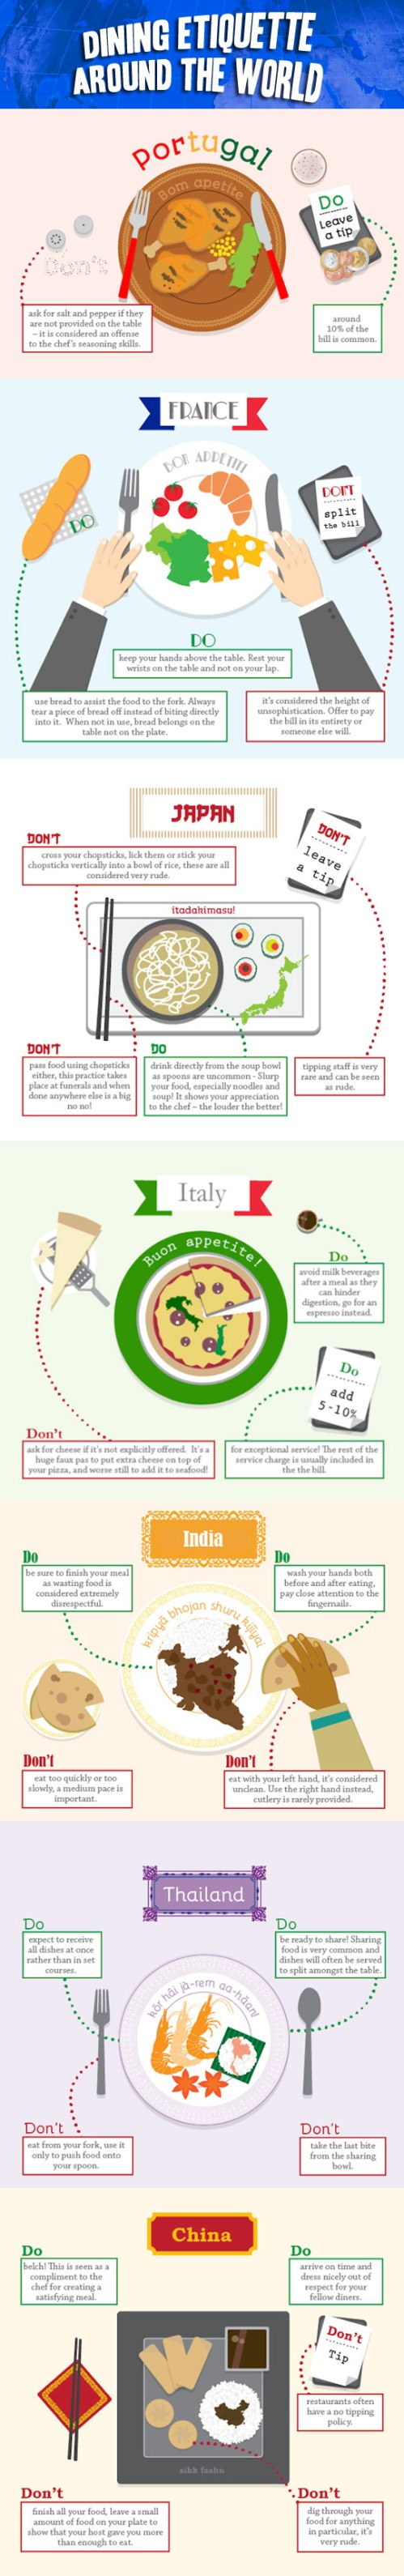 Dining etiquette around the world.